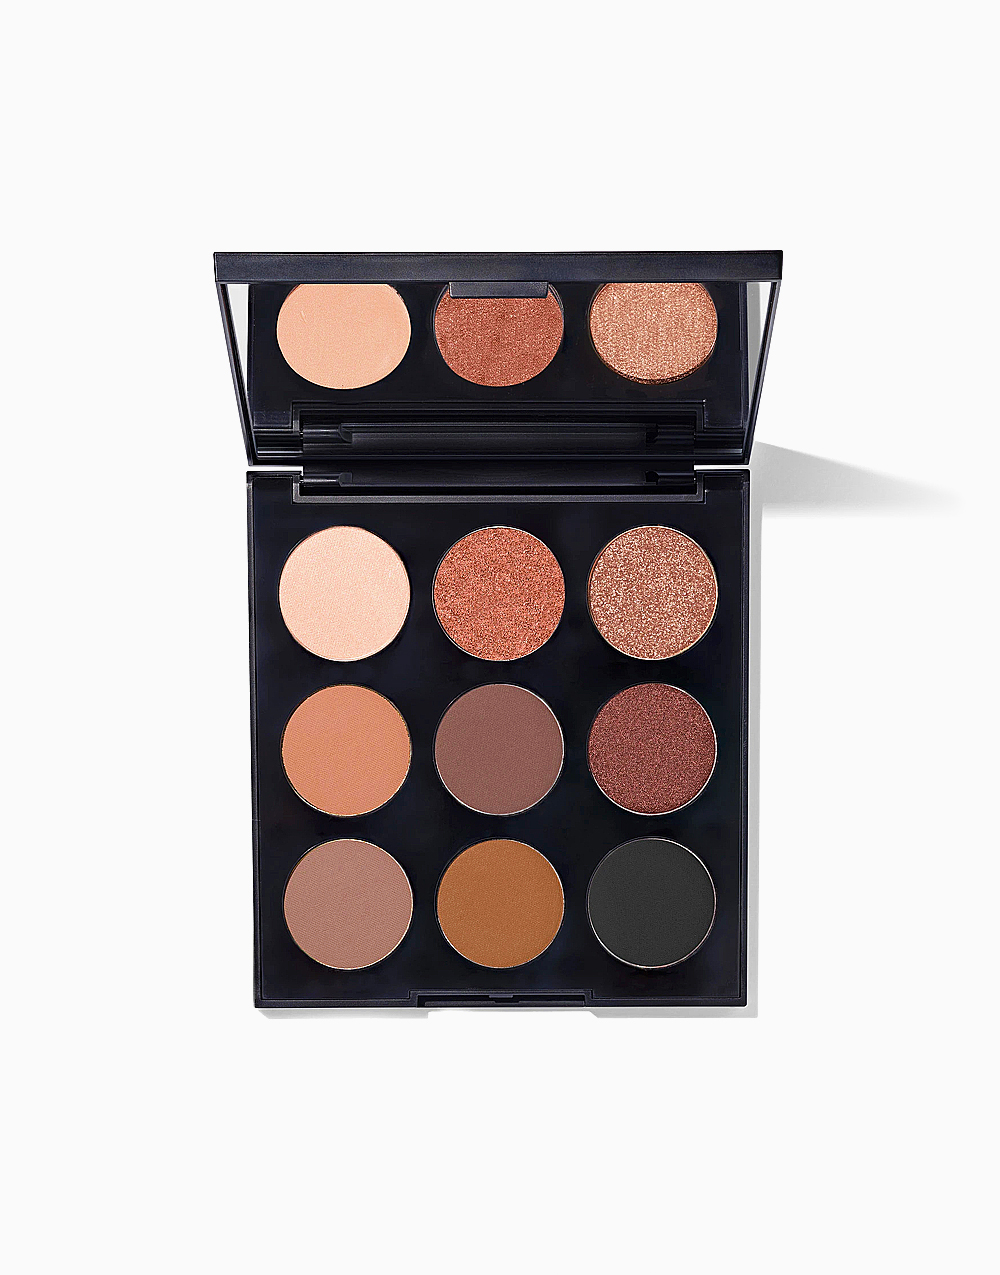 9T Neutral Territory Artistry Palette by Morphe